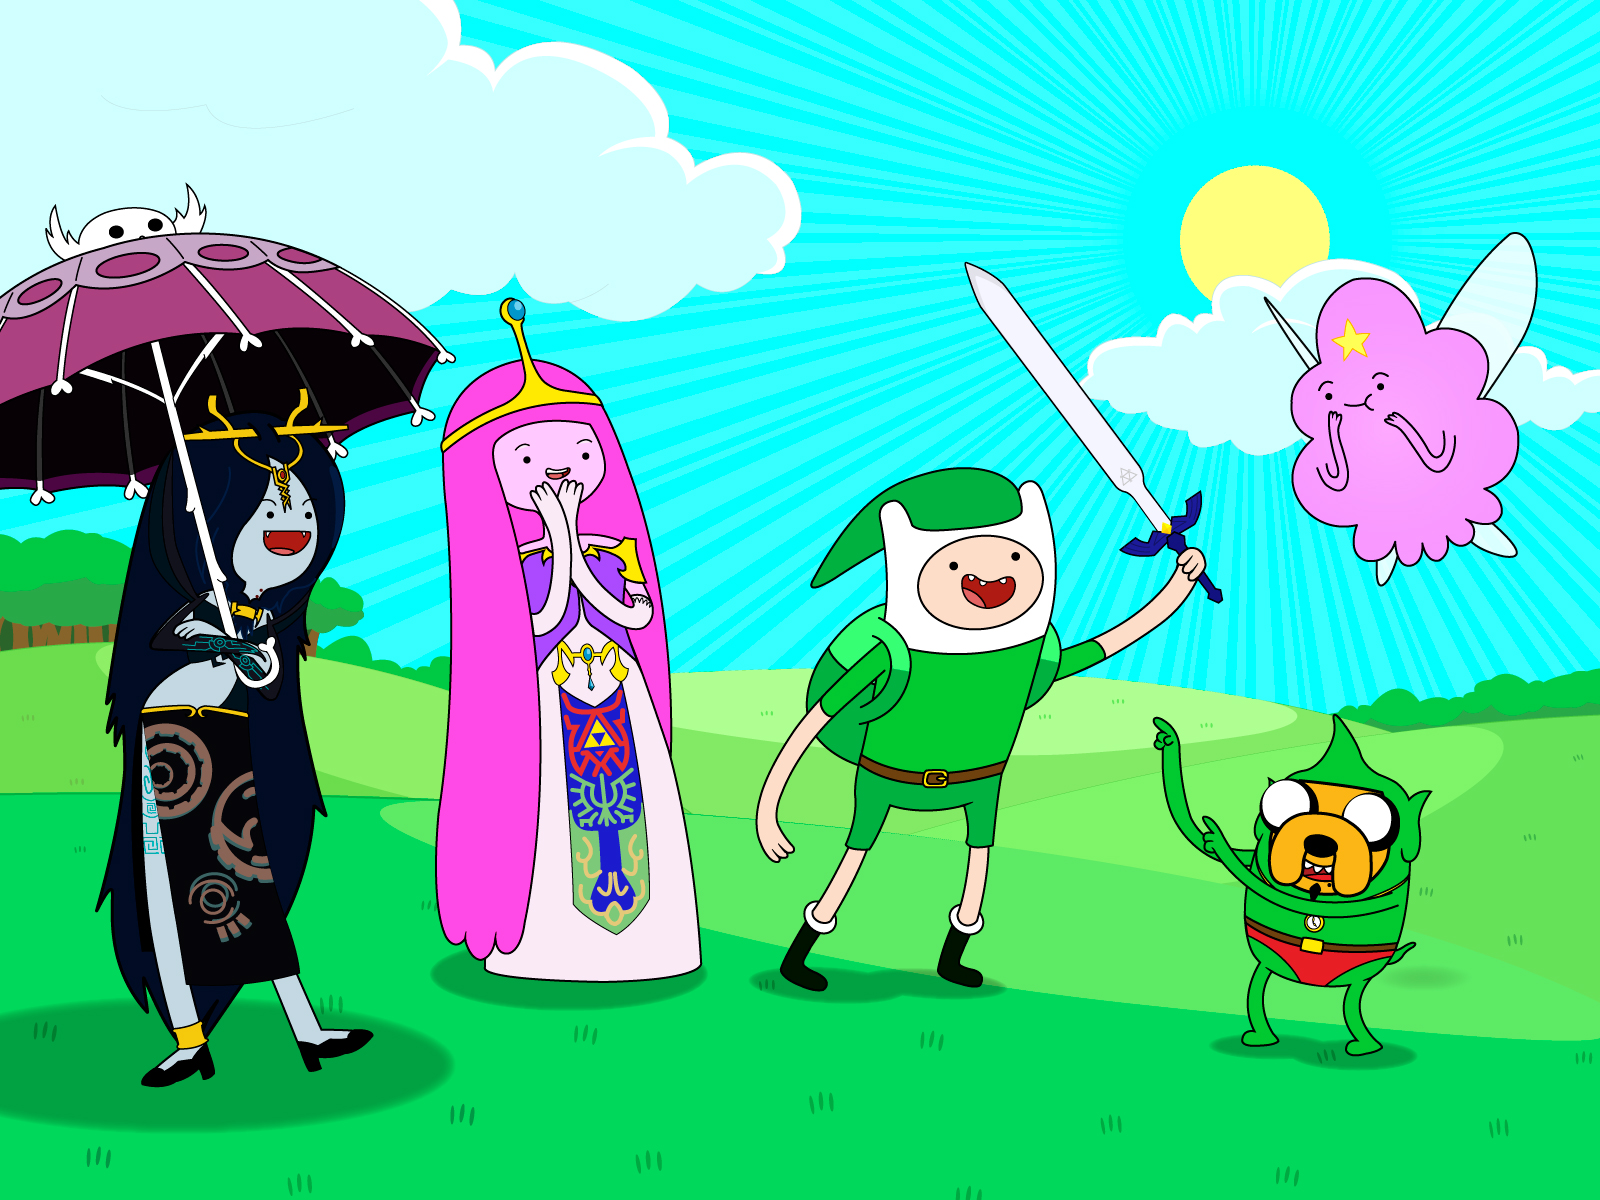 Adventure time with finn and jake wallpaper wallpapersafari adventure time with finn amp jake hd wallpapers cartoon 1600x1200 thecheapjerseys Gallery